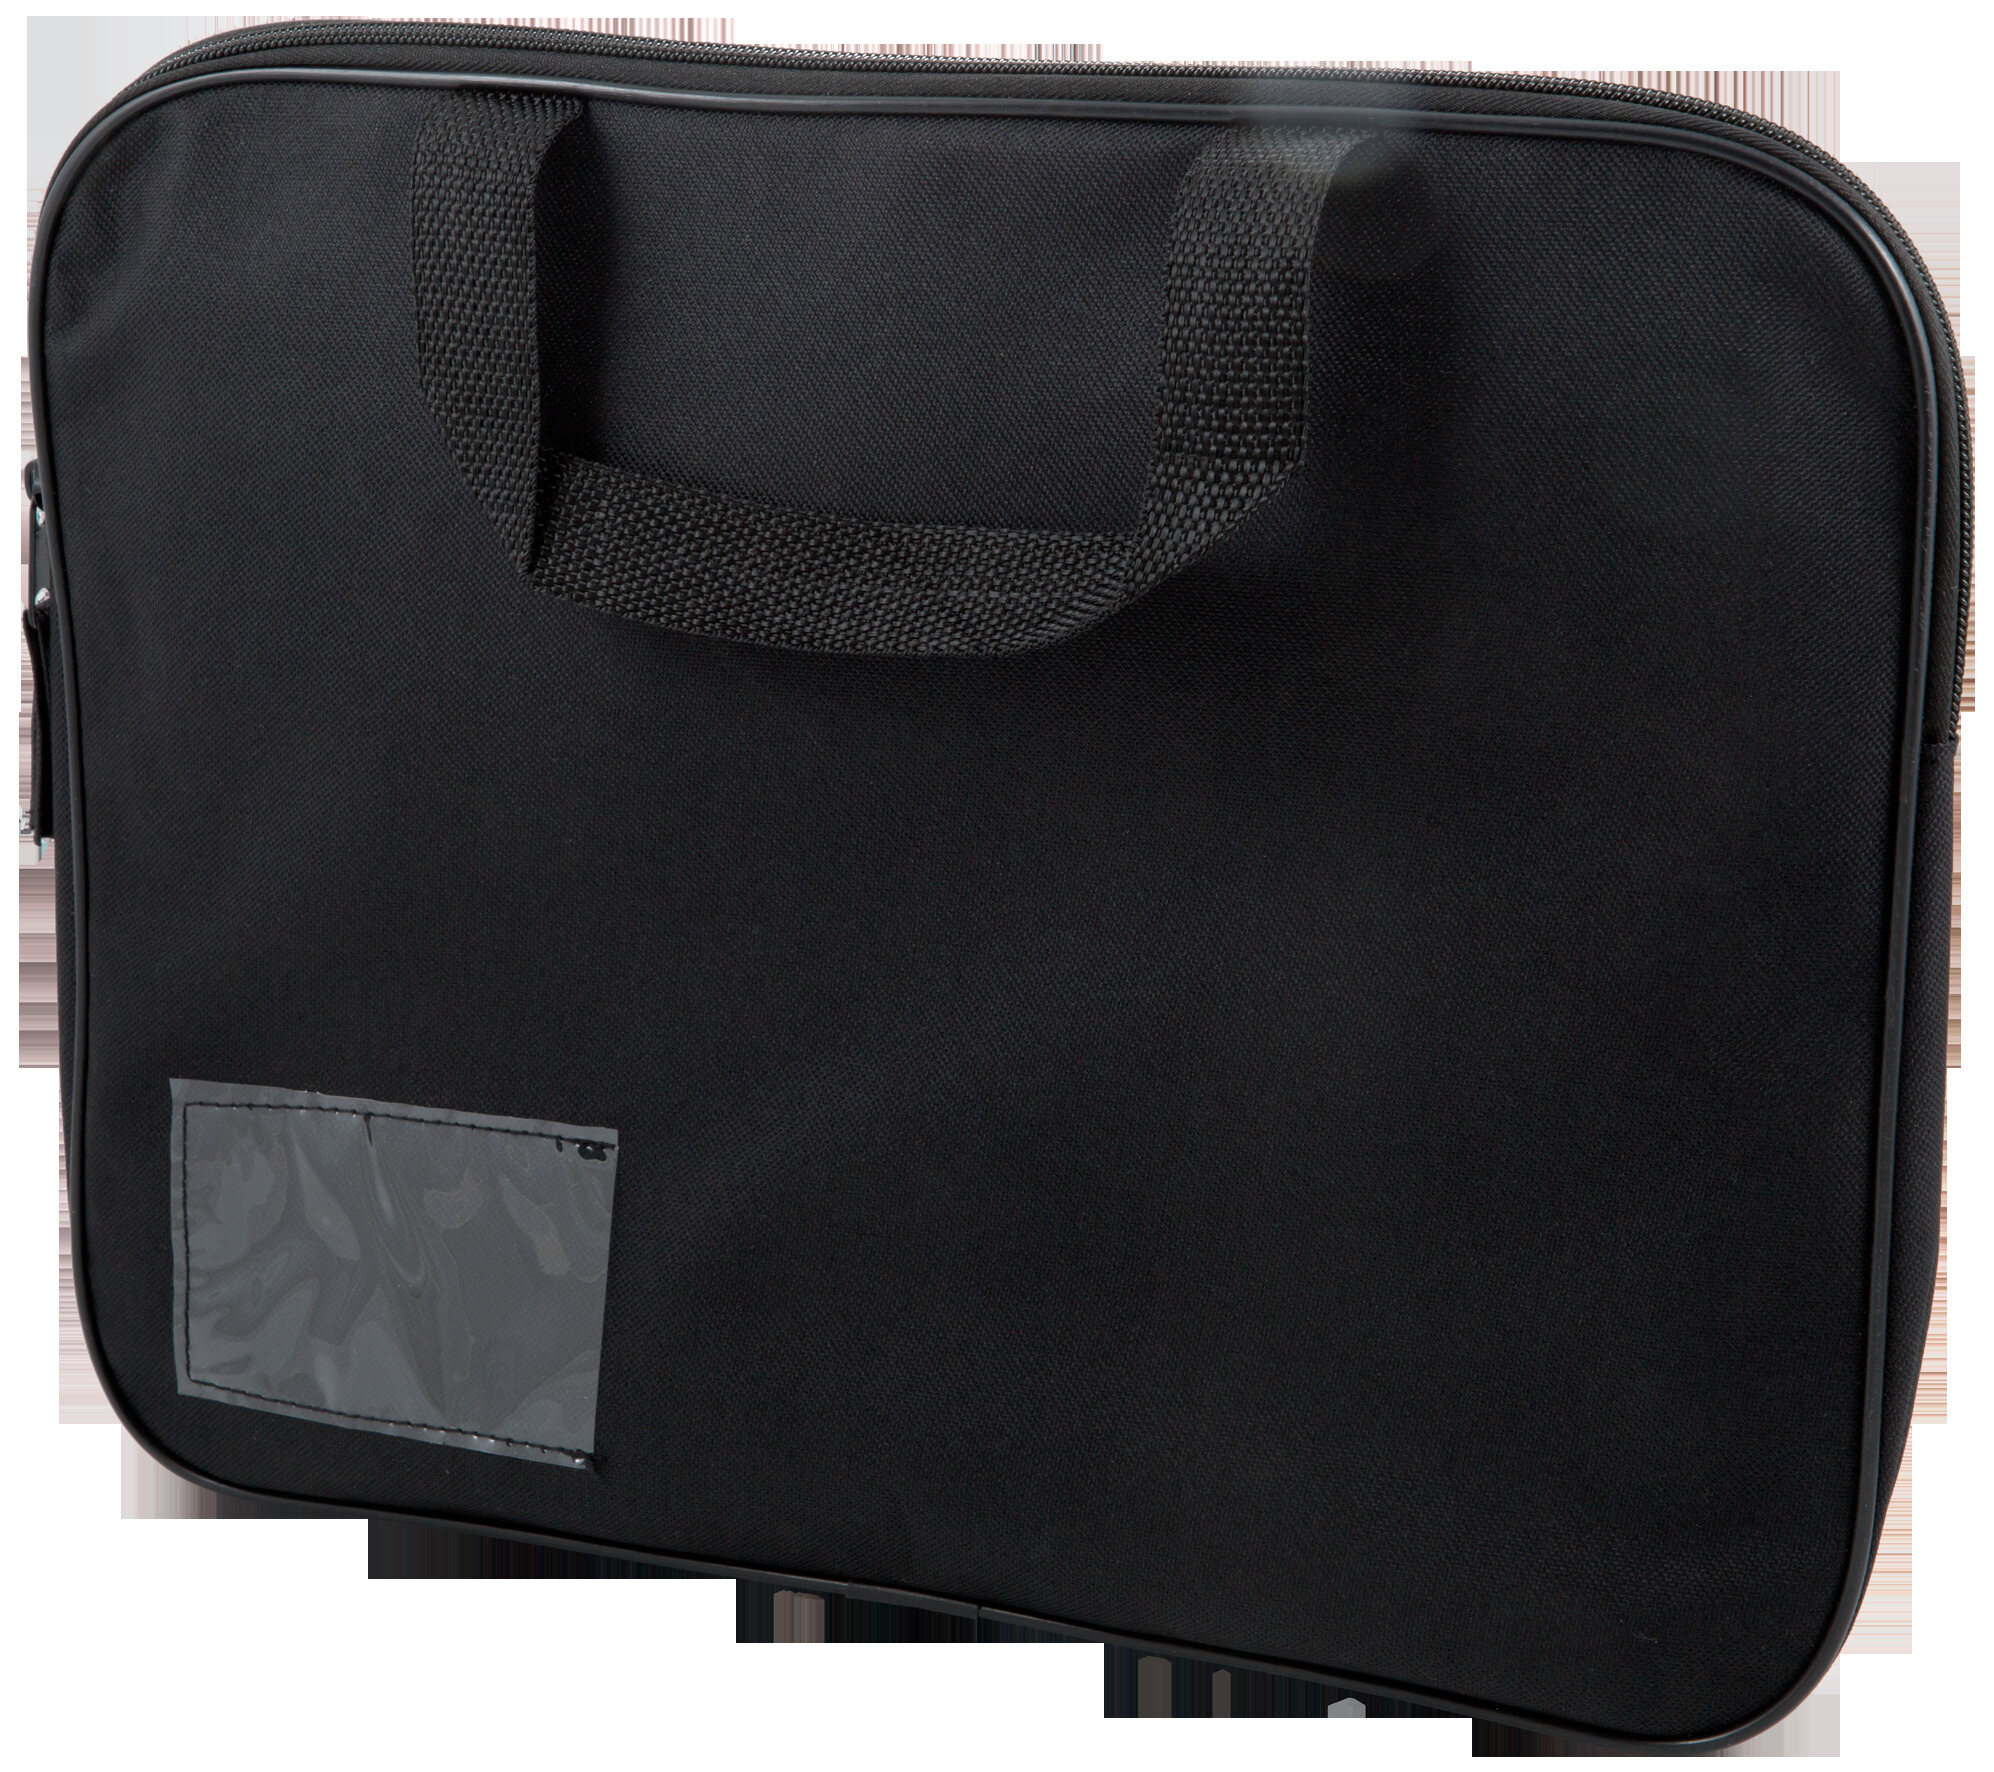 Homework Bag (Book Bag) With Handle - Black